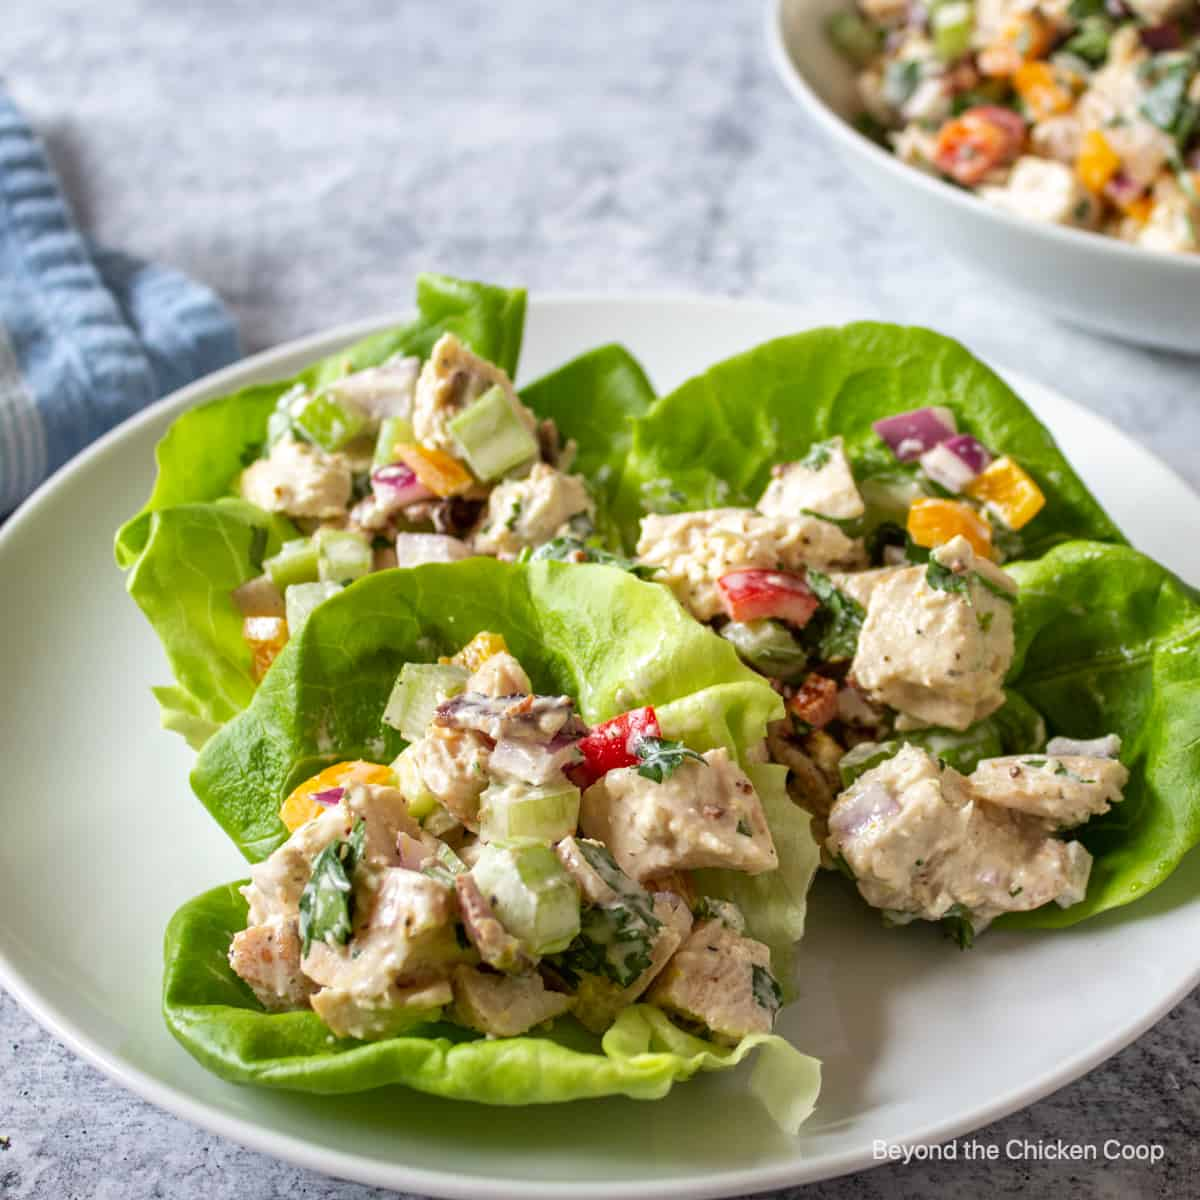 Lettuce wraps filled with chicken salad.